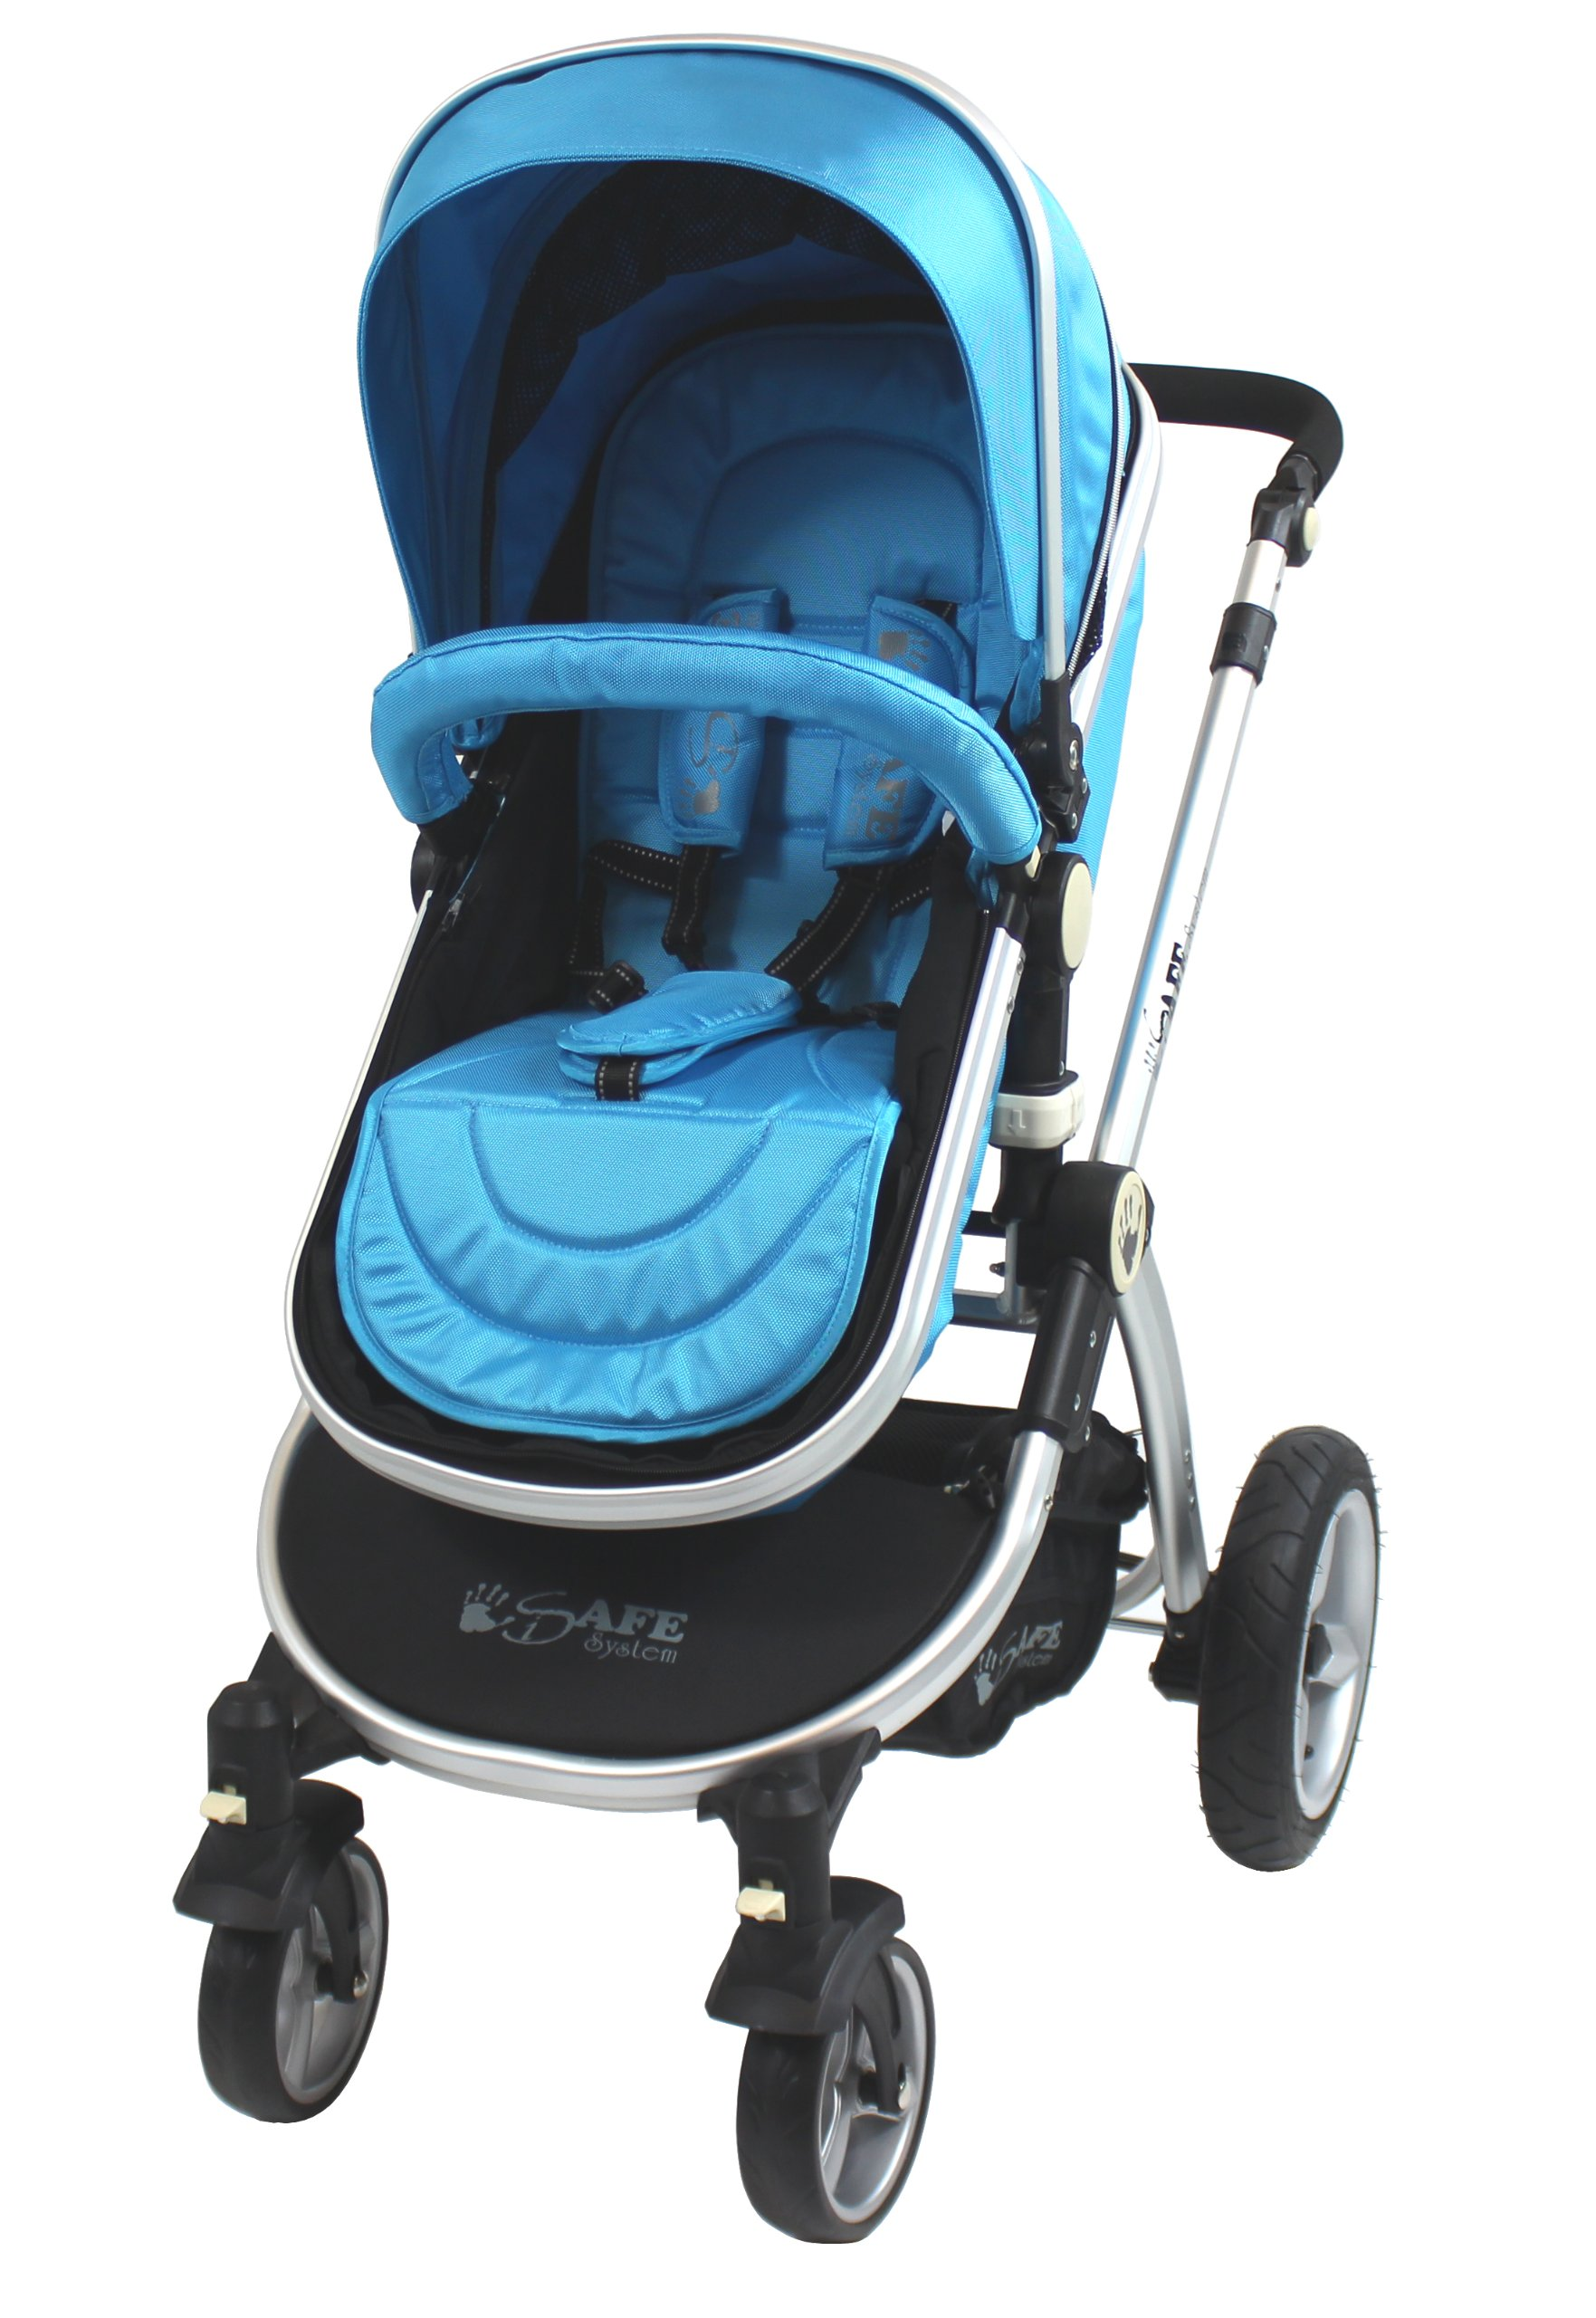 i-Safe System - Ocean Trio Travel System Pram & Luxury Stroller 3 in 1 Complete With Car Seat iSafe  5